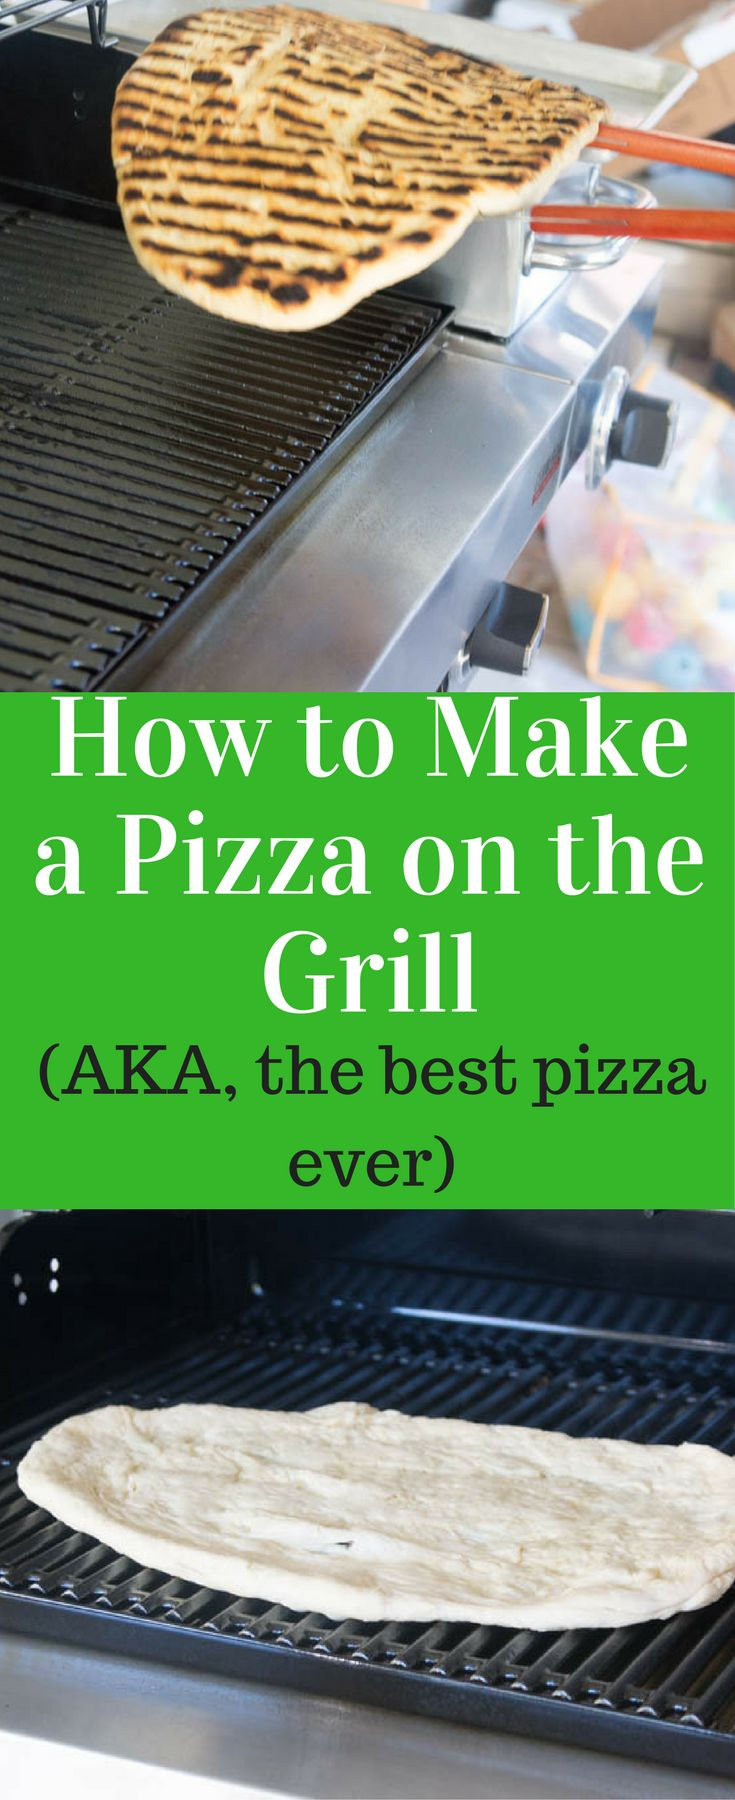 How to Make Delicious Homemade Pizza on the Grill